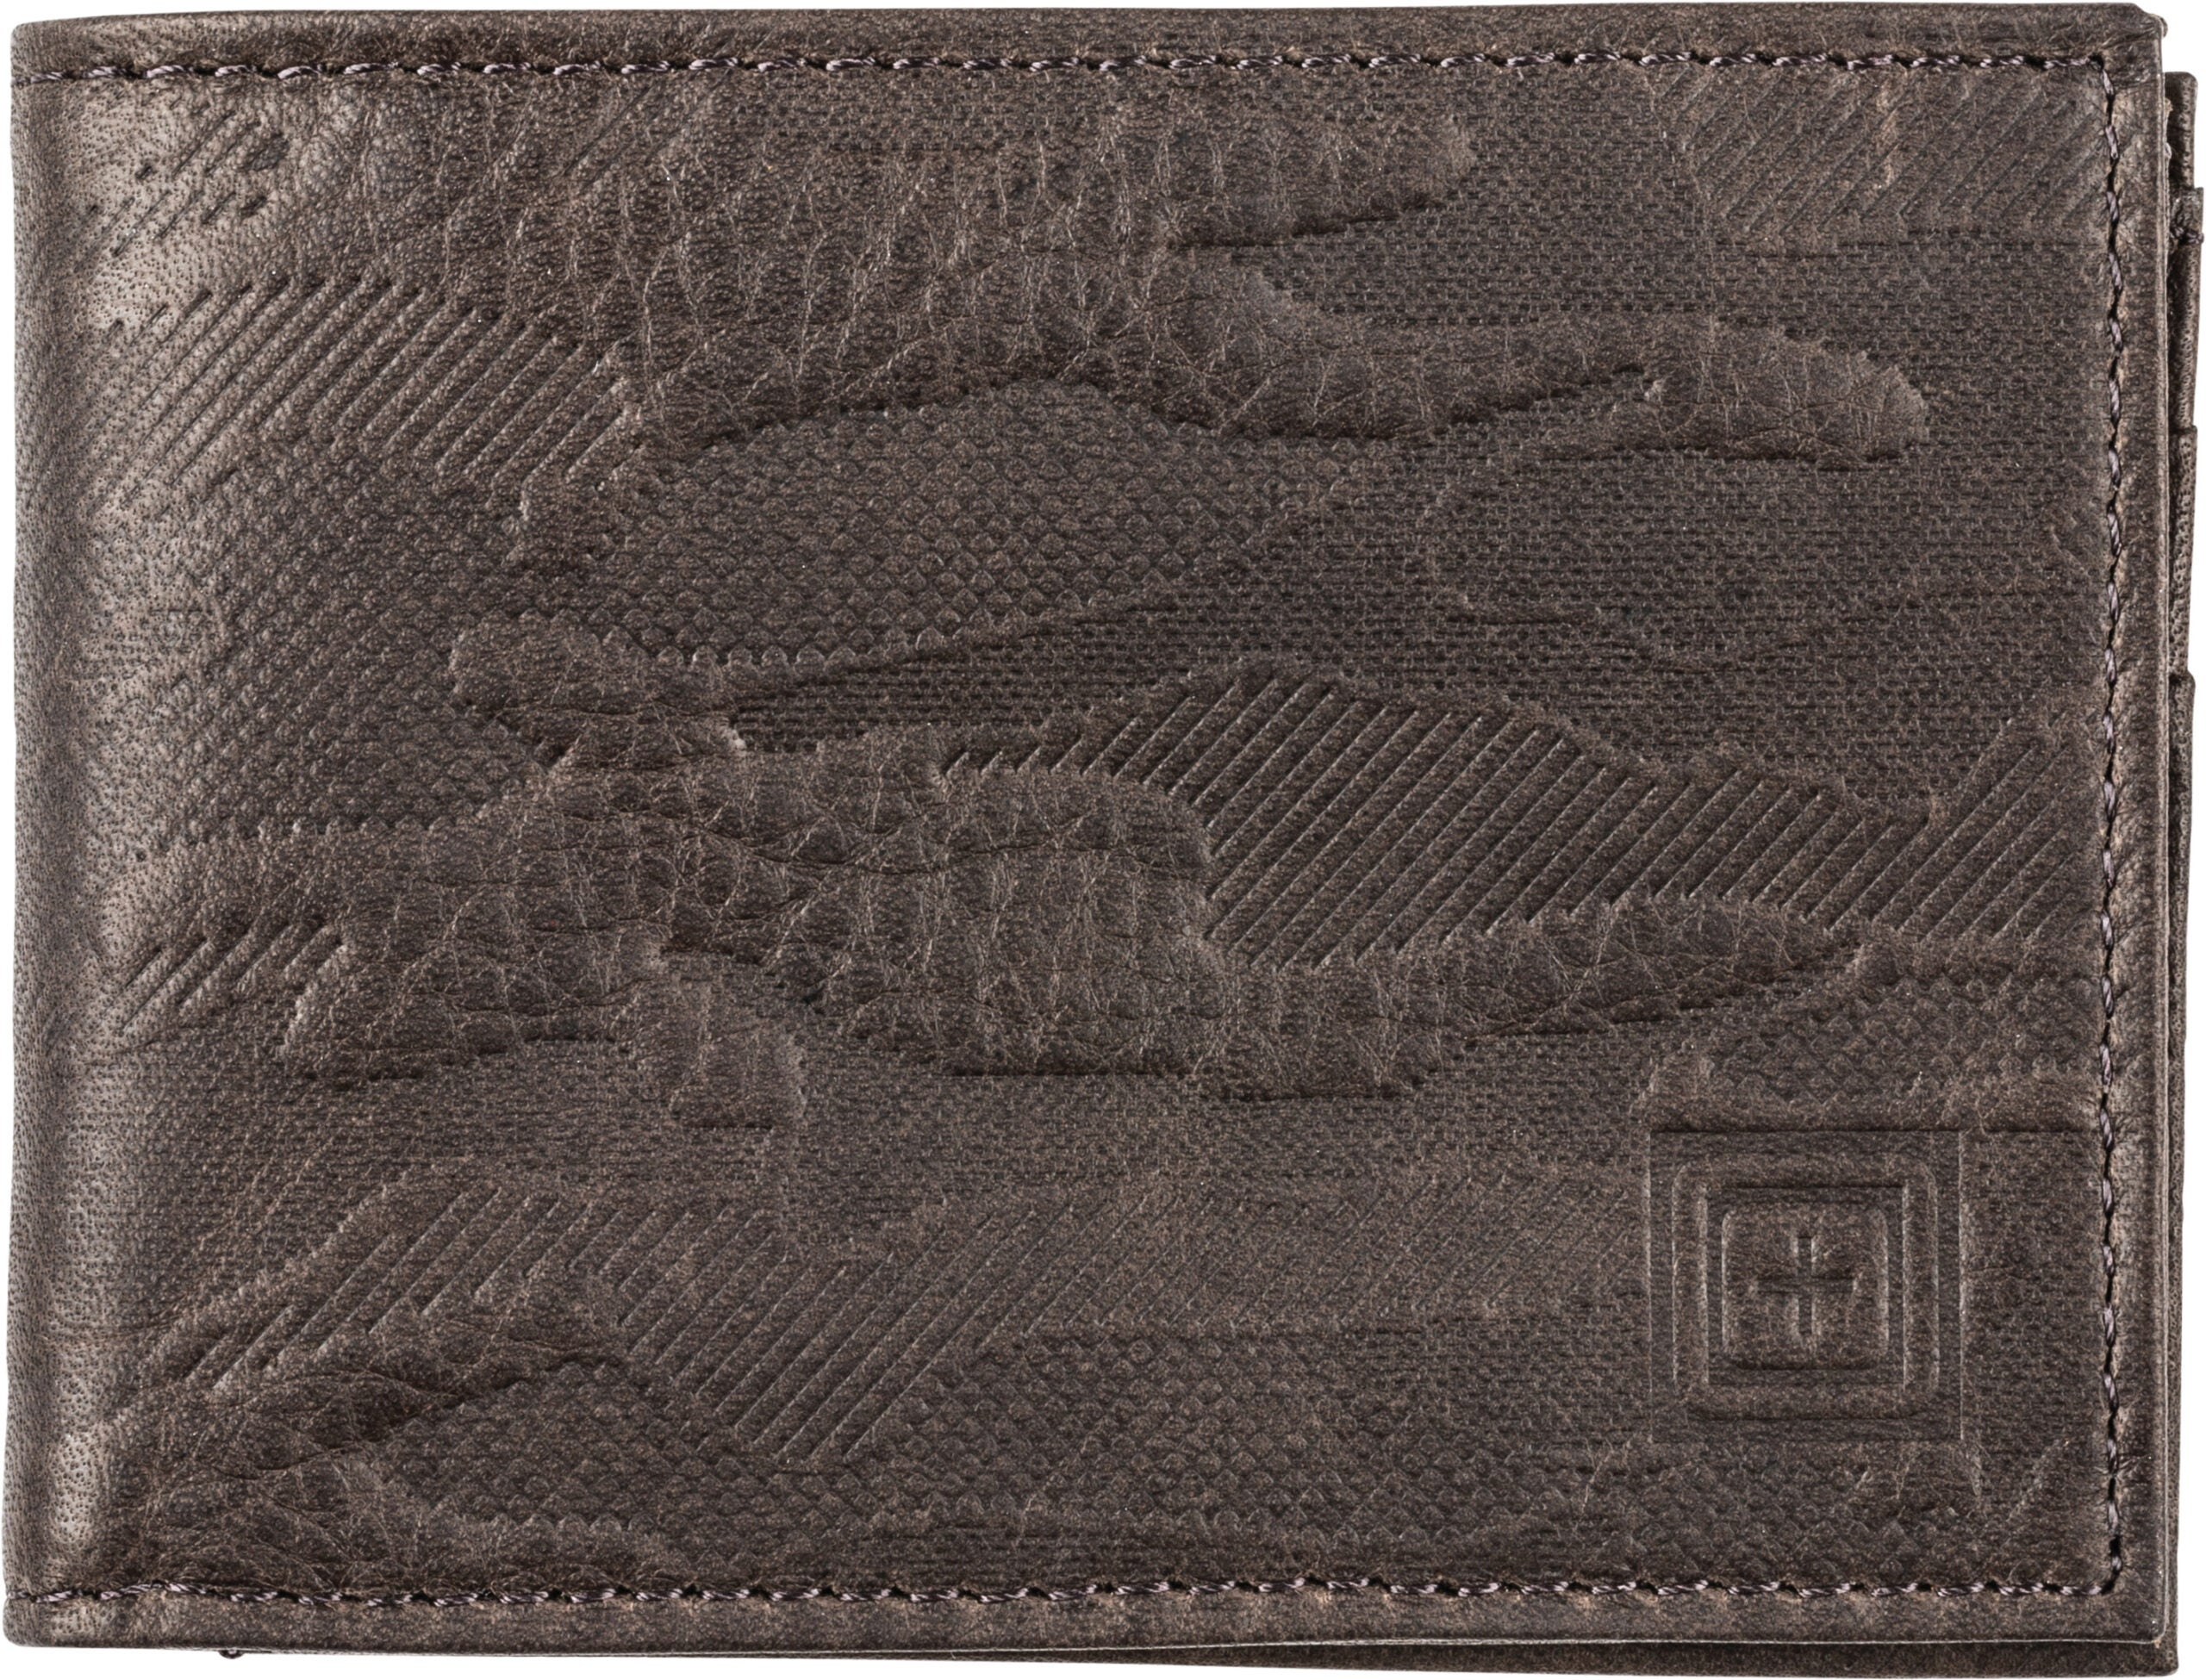 The 5.11 Wheeler Leather Bifold wallet.